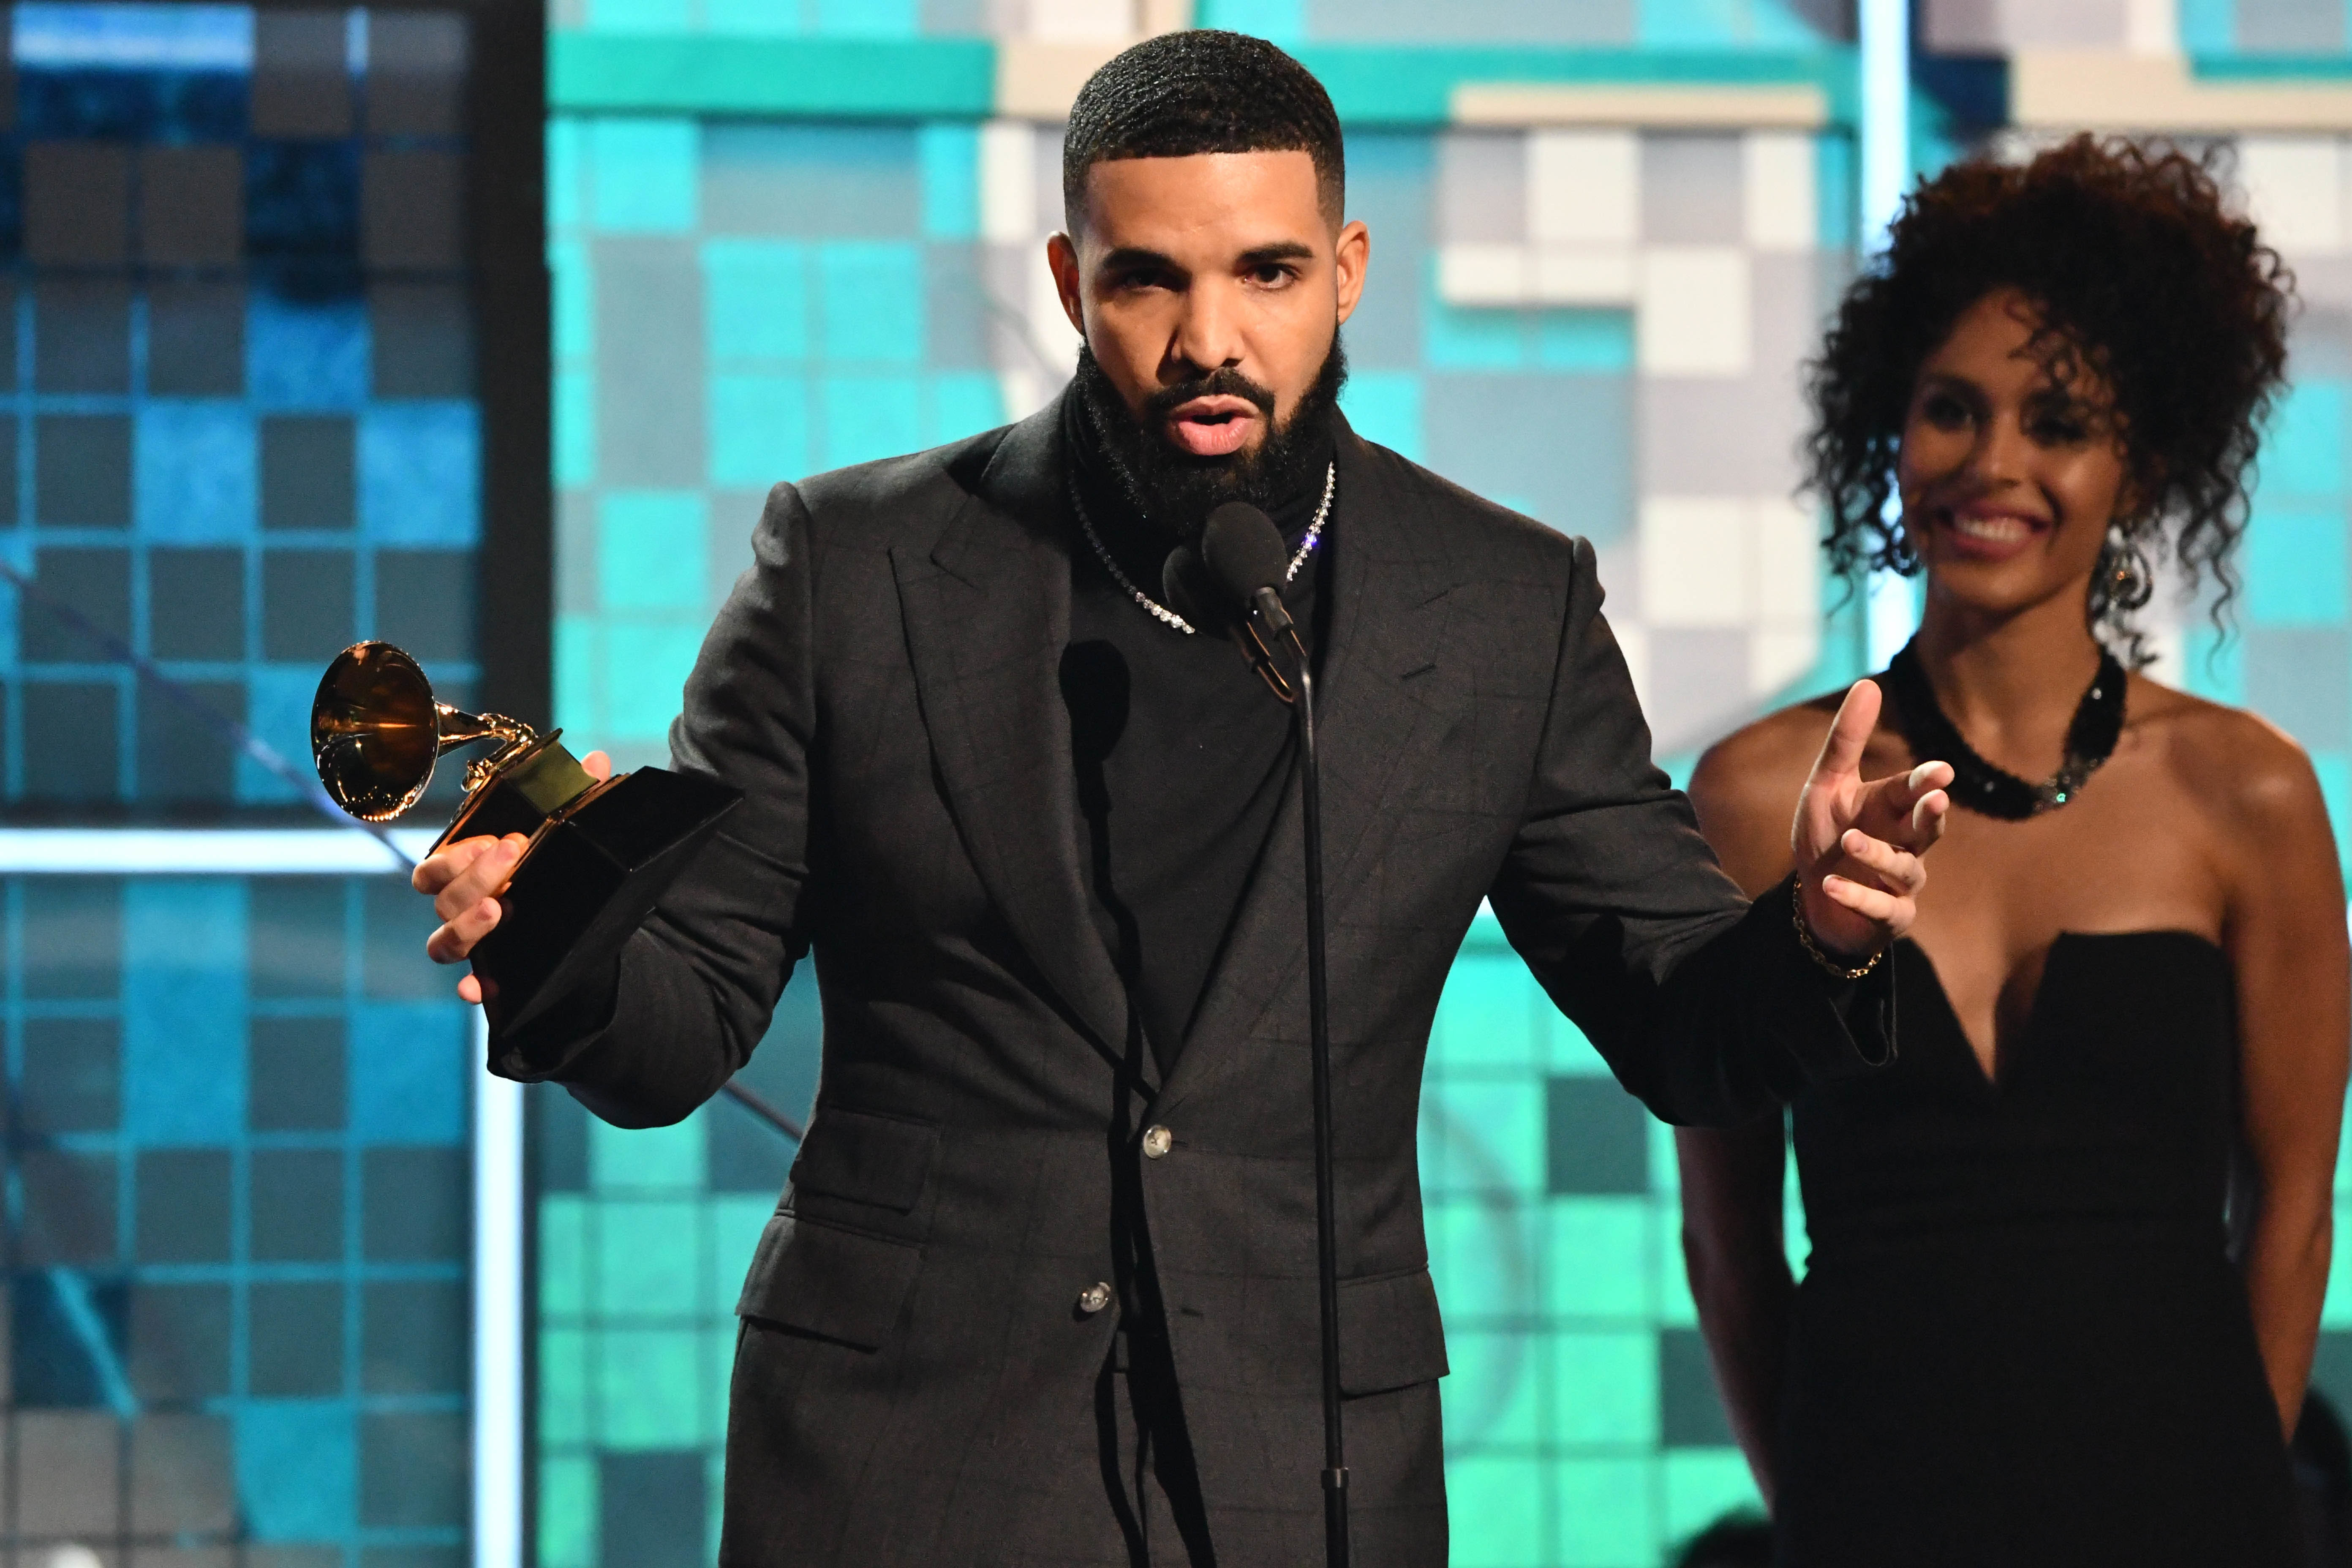 Drake's speech was cut off after he told artists they don't need an award. Credit: PA